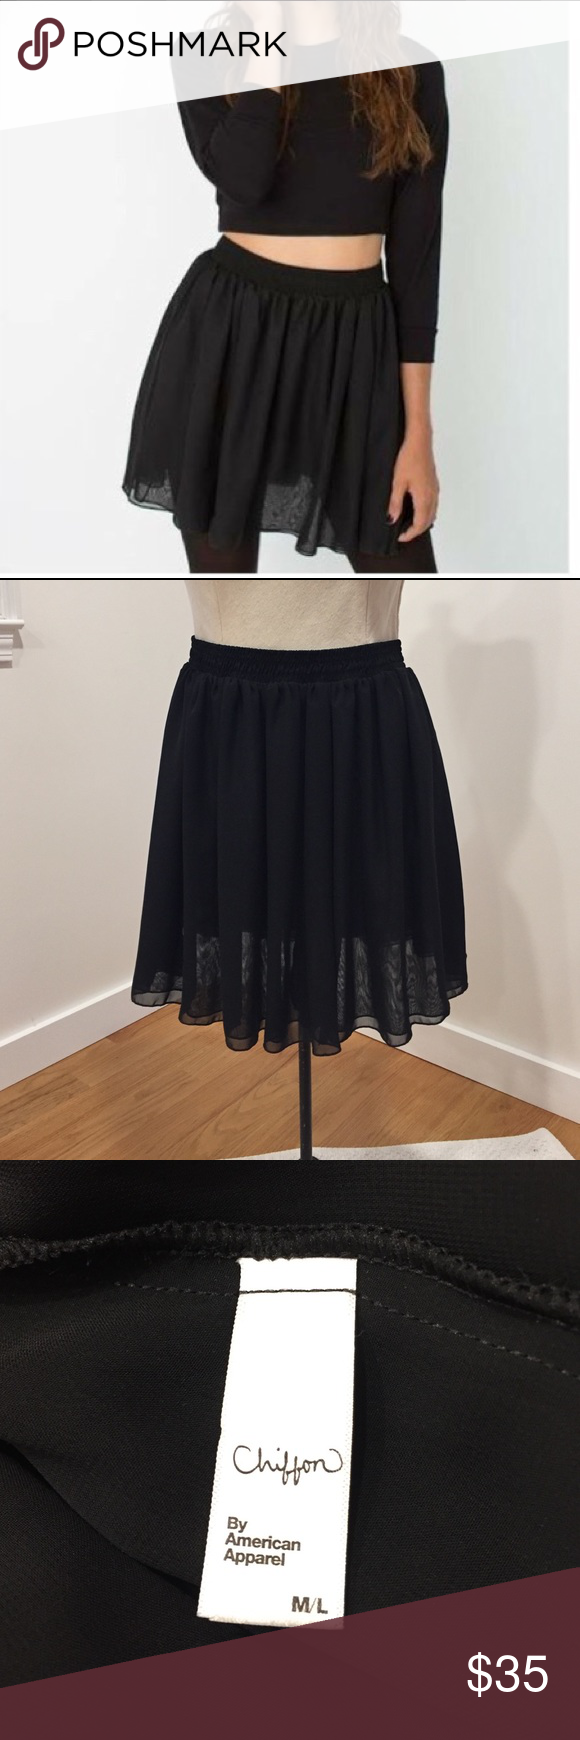 American Apparel black chiffon skirt American Apparel black chiffon skirt in size M/L. Worn once, selling because it feels just a bit too short on me for my preferences. Shown on my dress form which is kind of short, so it may look longer - let me know if you would like measurements. Make me an offer! No trades! American Apparel Skirts Mini